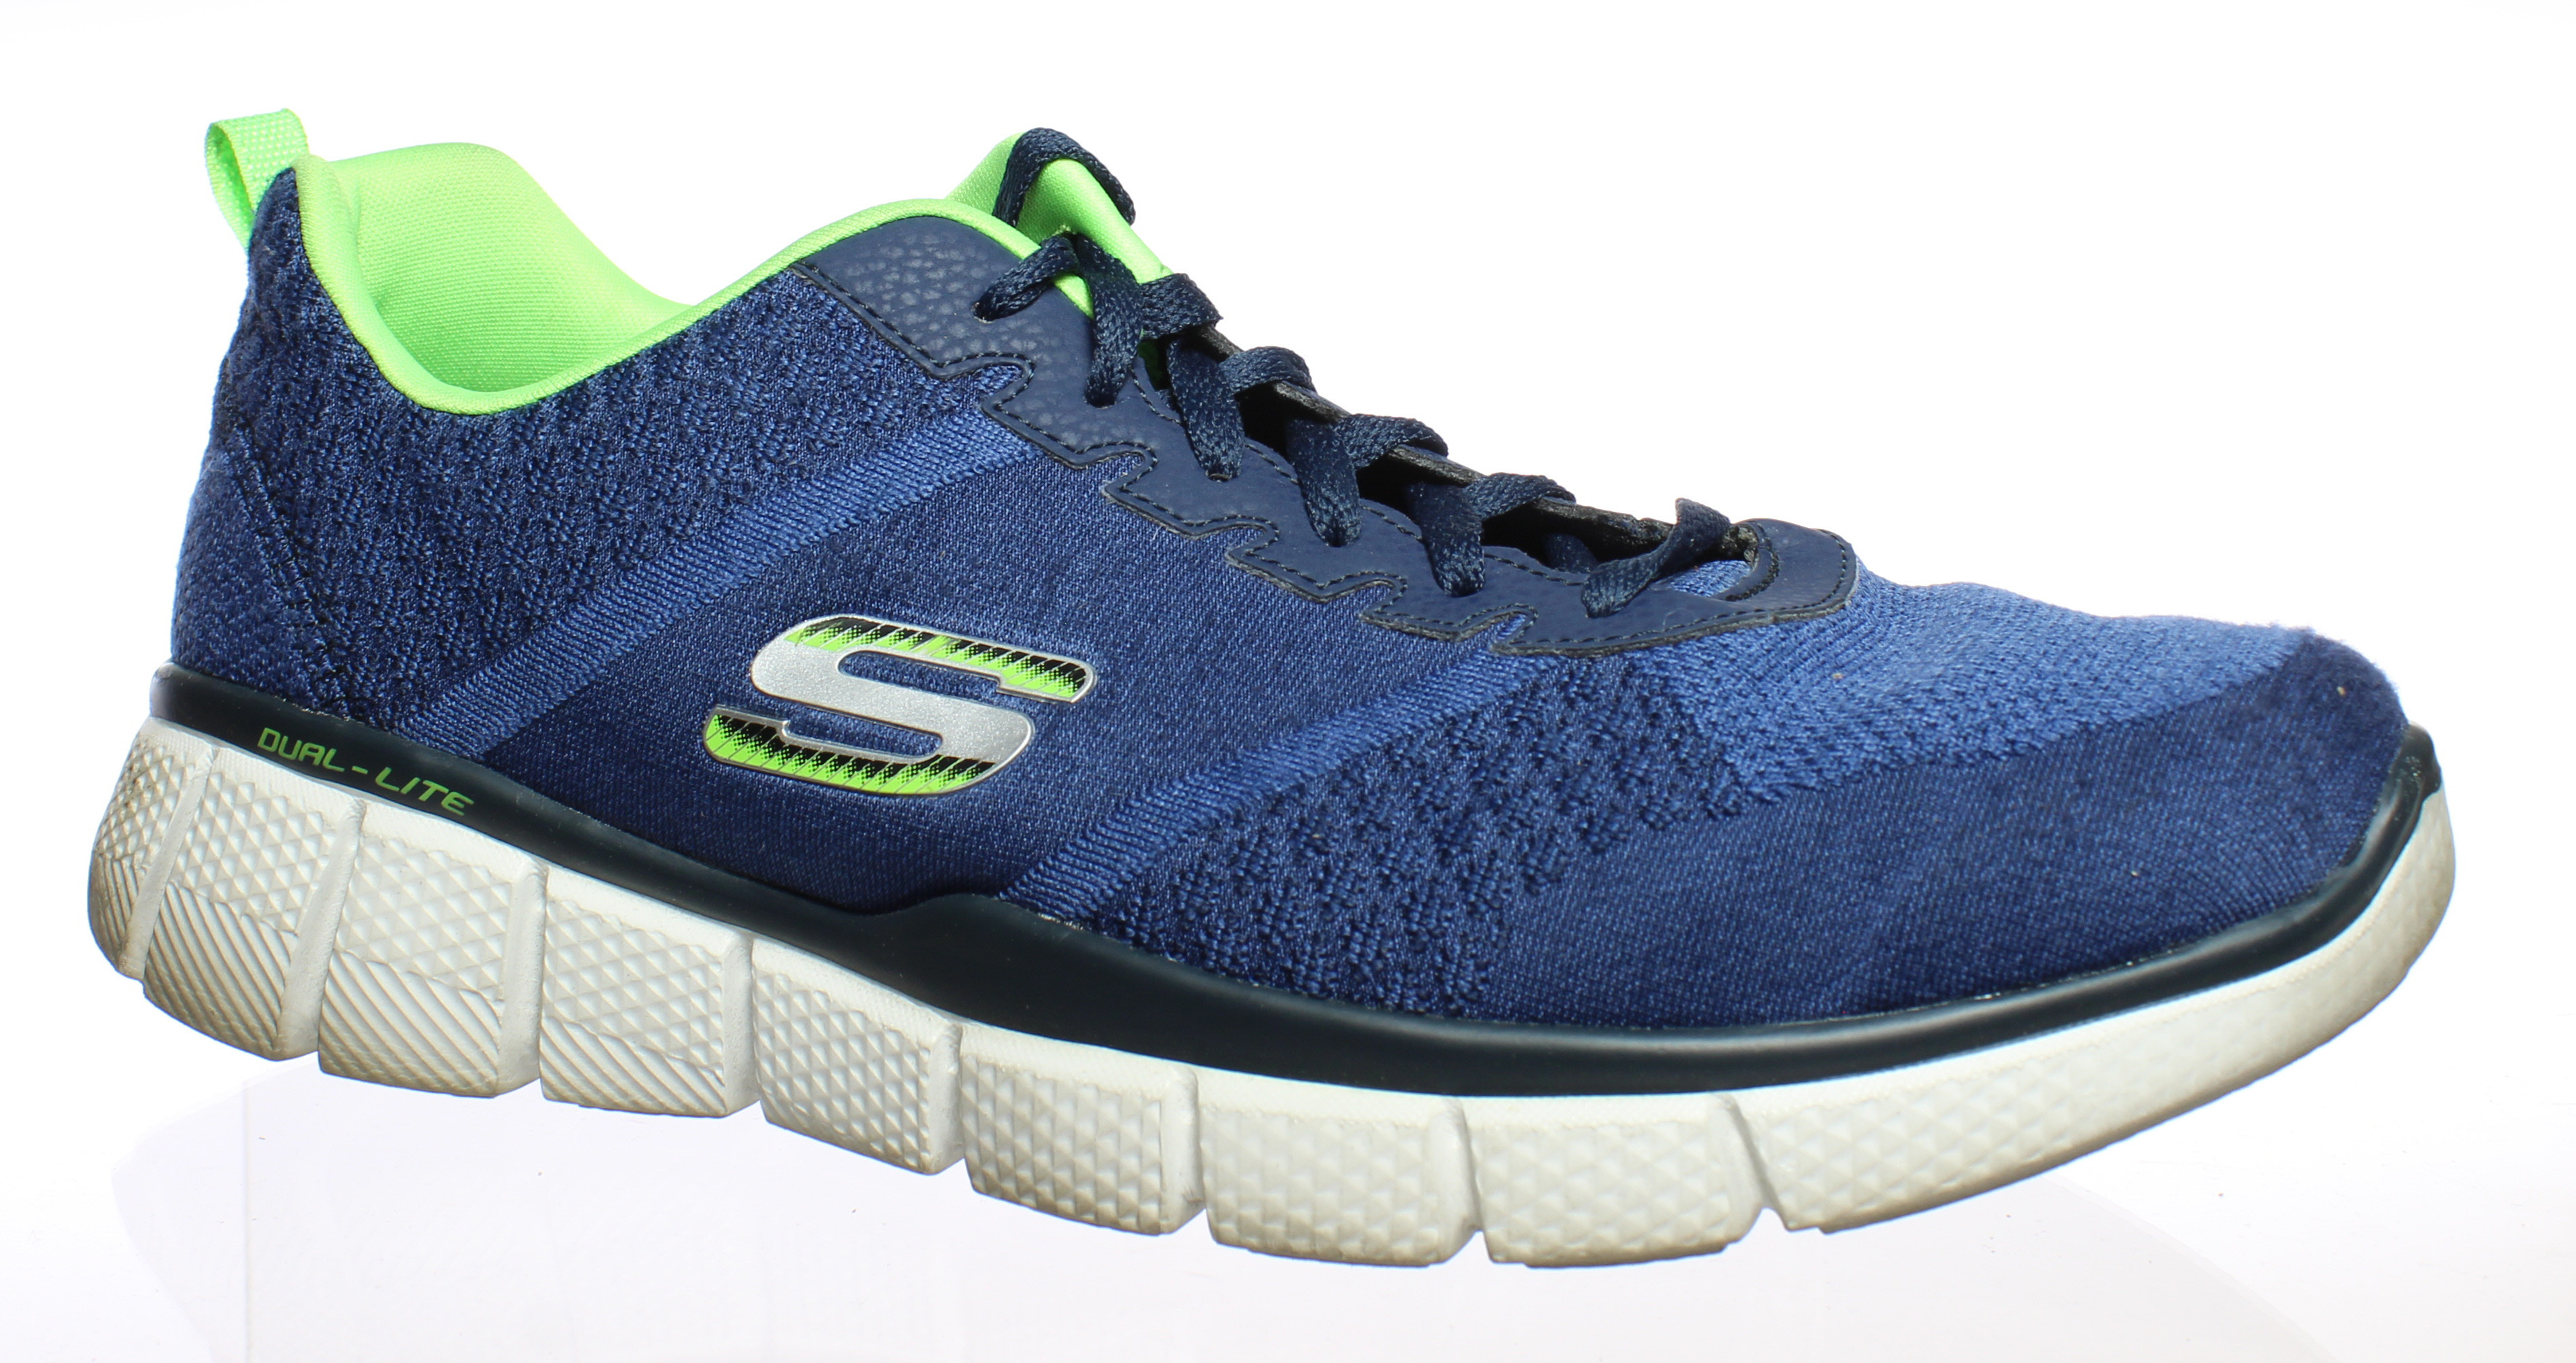 Skechers Mens Running Shoes Size 10.5 (18748)